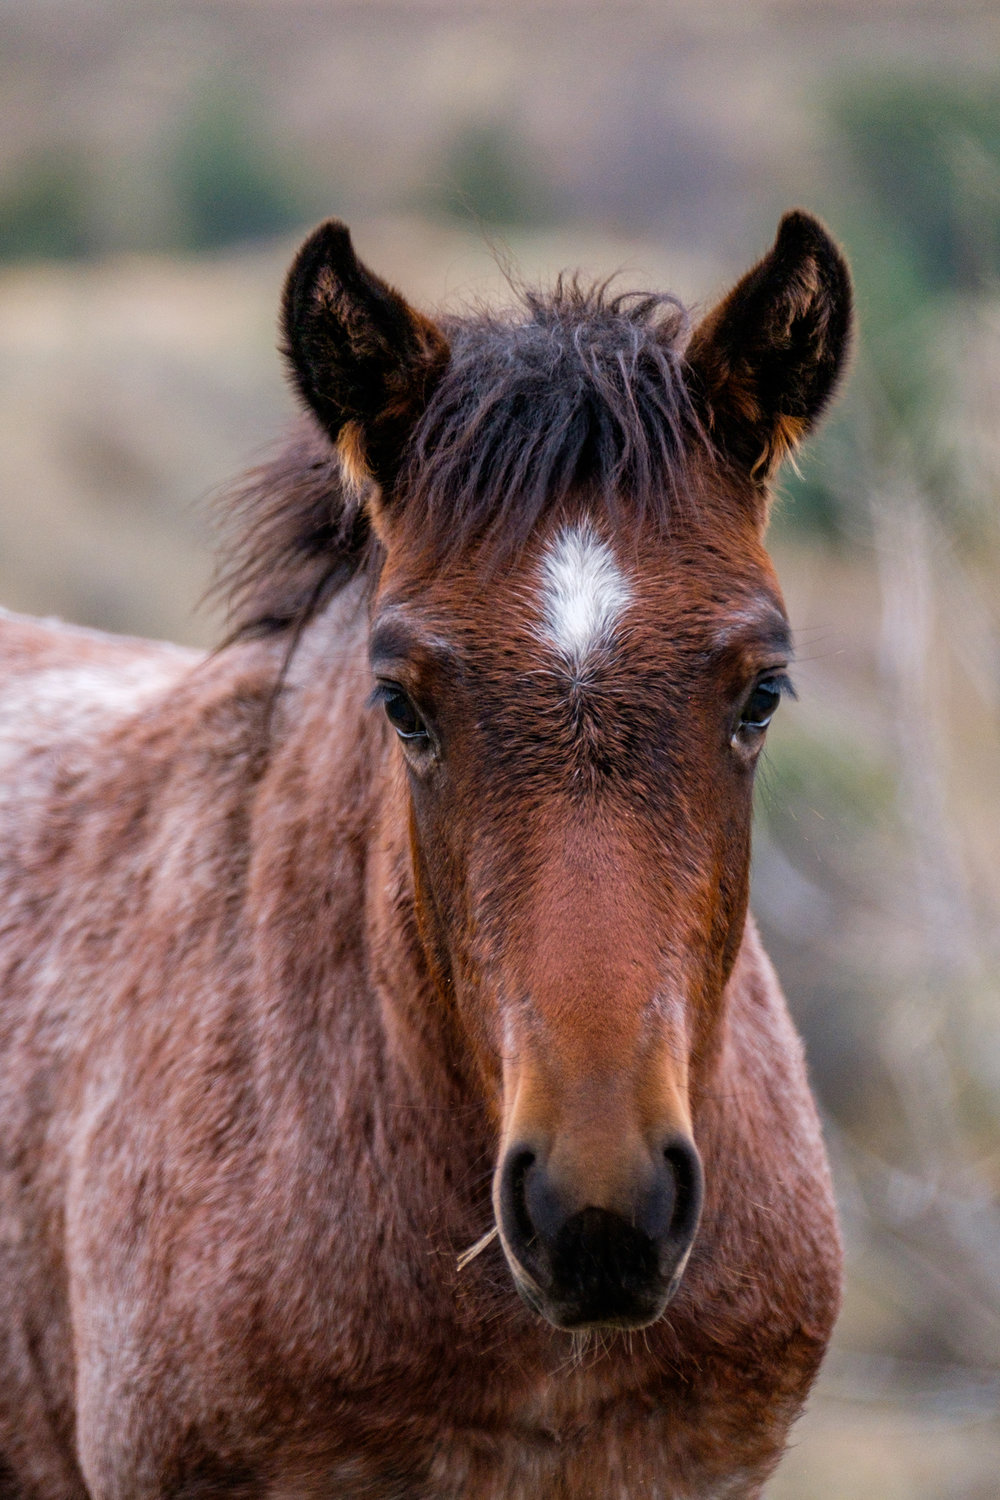 The park is famous for its beautiful wild horses, all of which have names given by the park service.